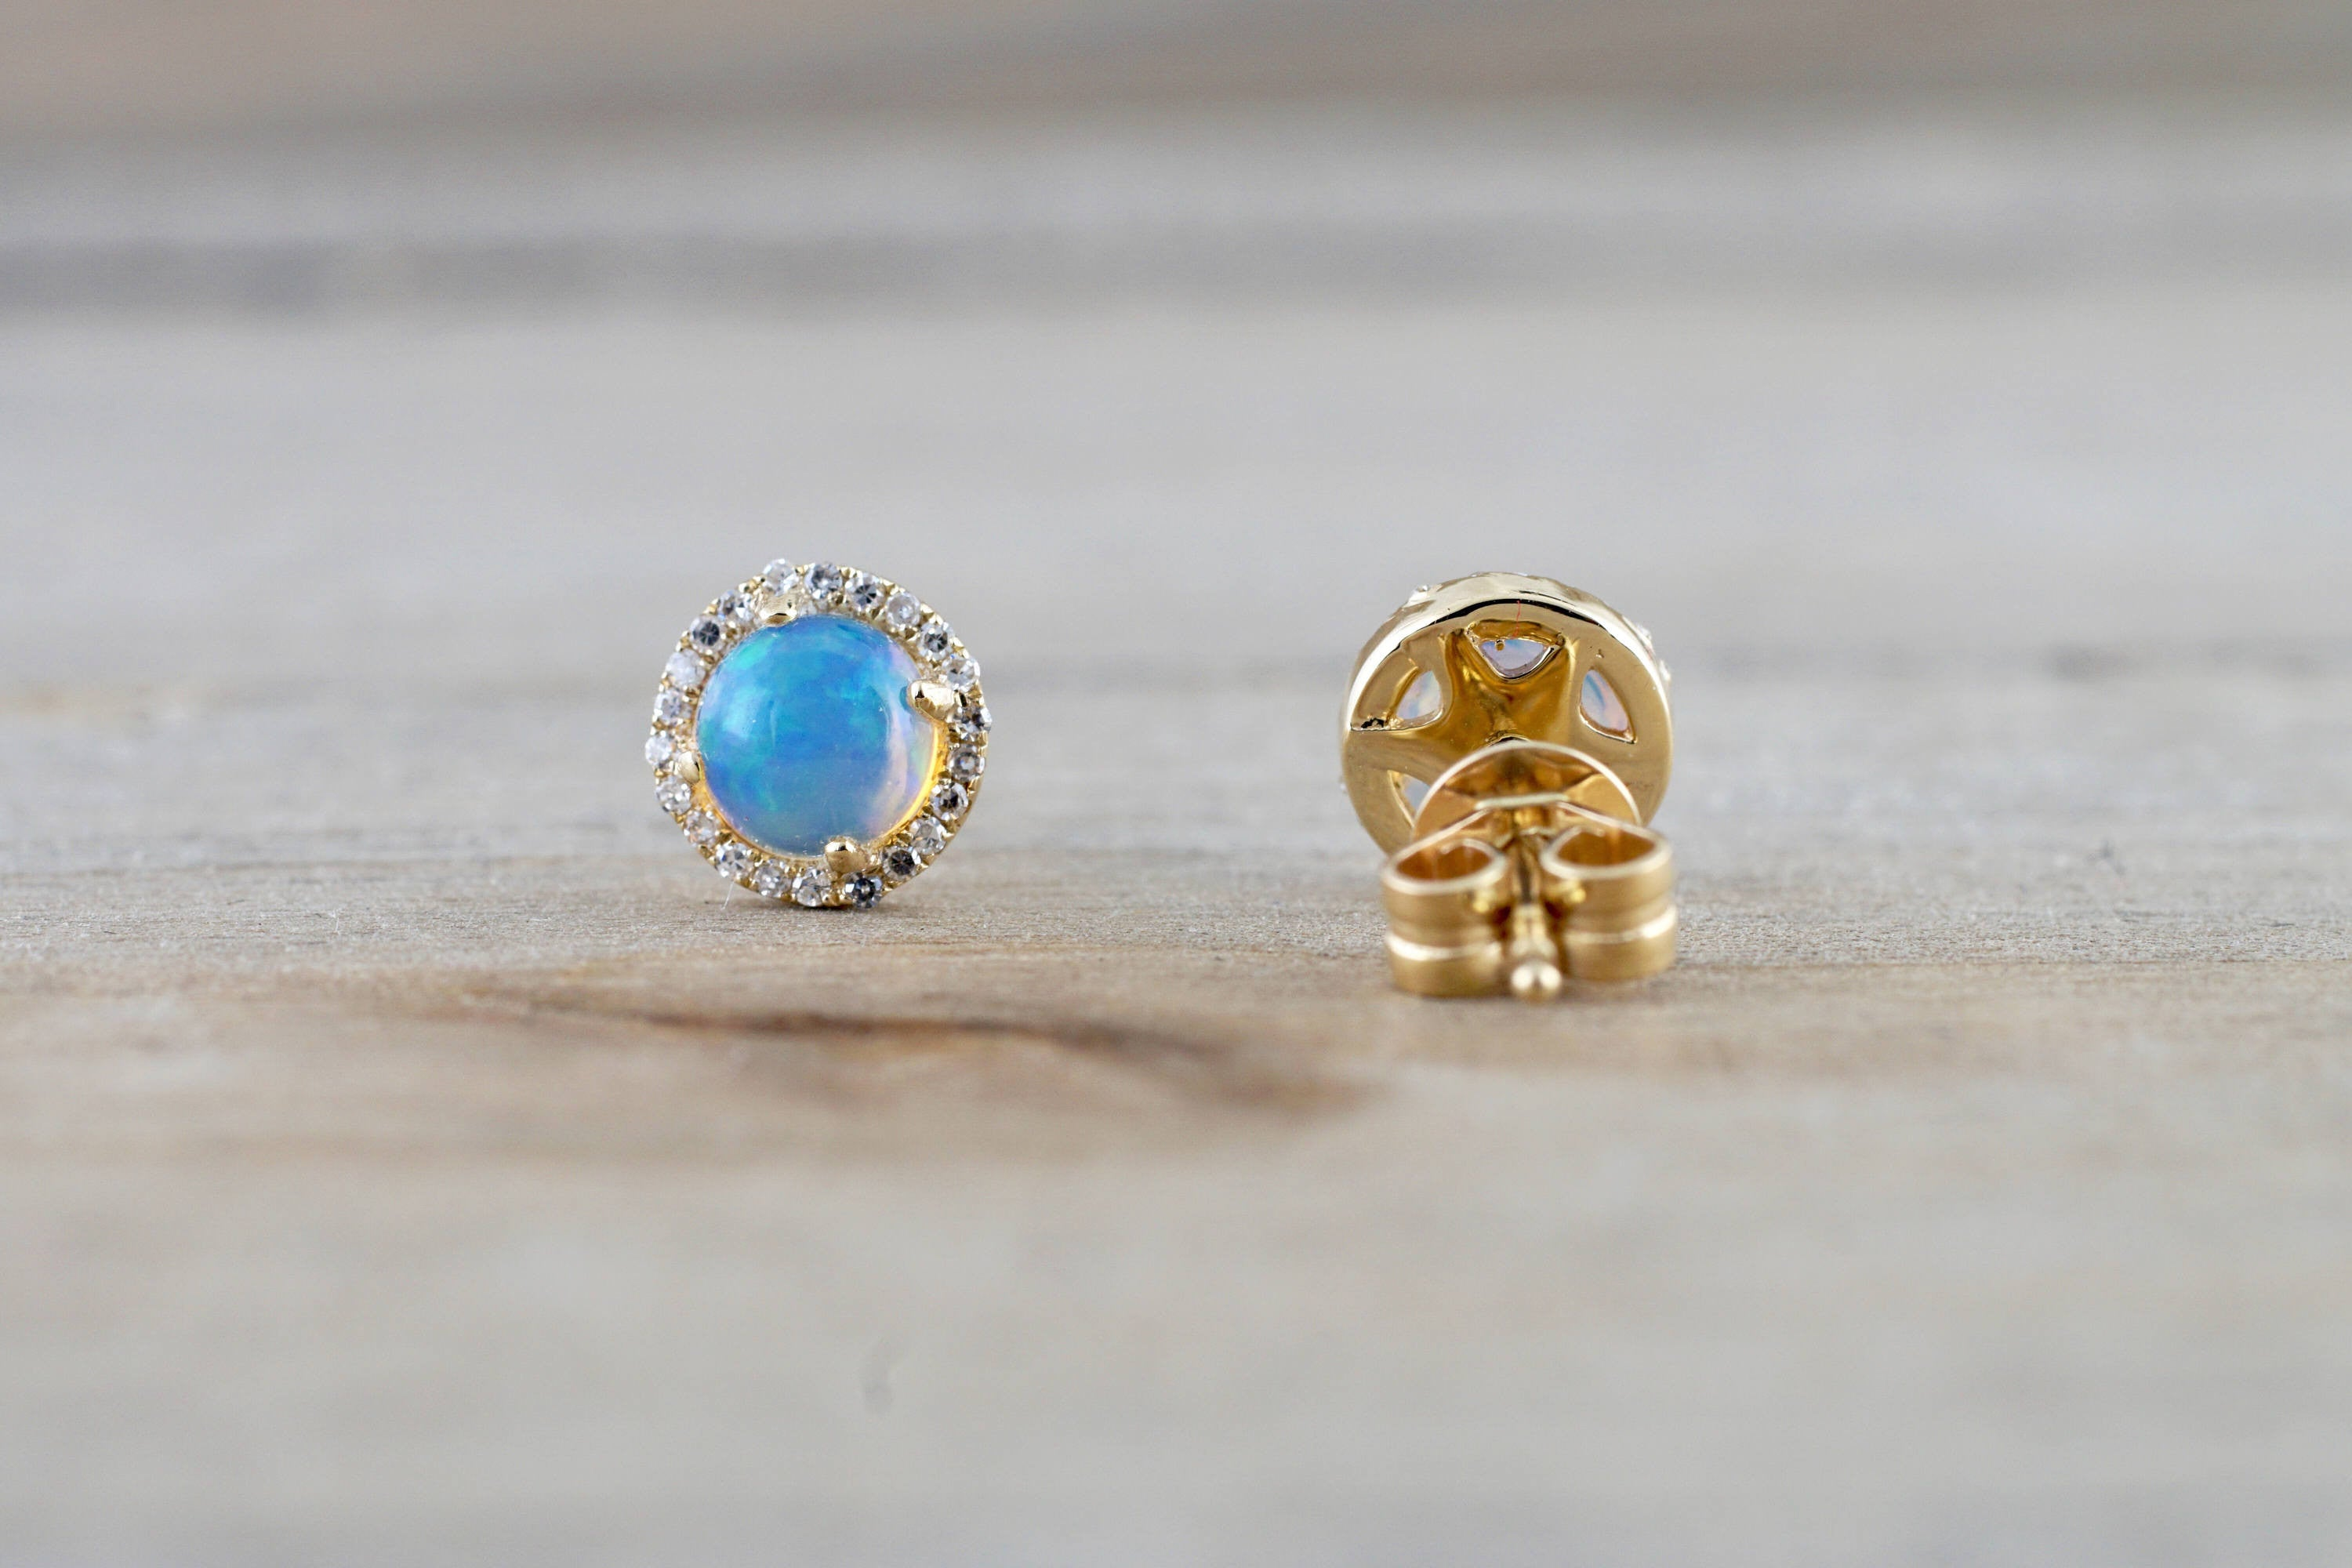 14k Yellow Gold Round Opal Diamond Halo Earrings Studs